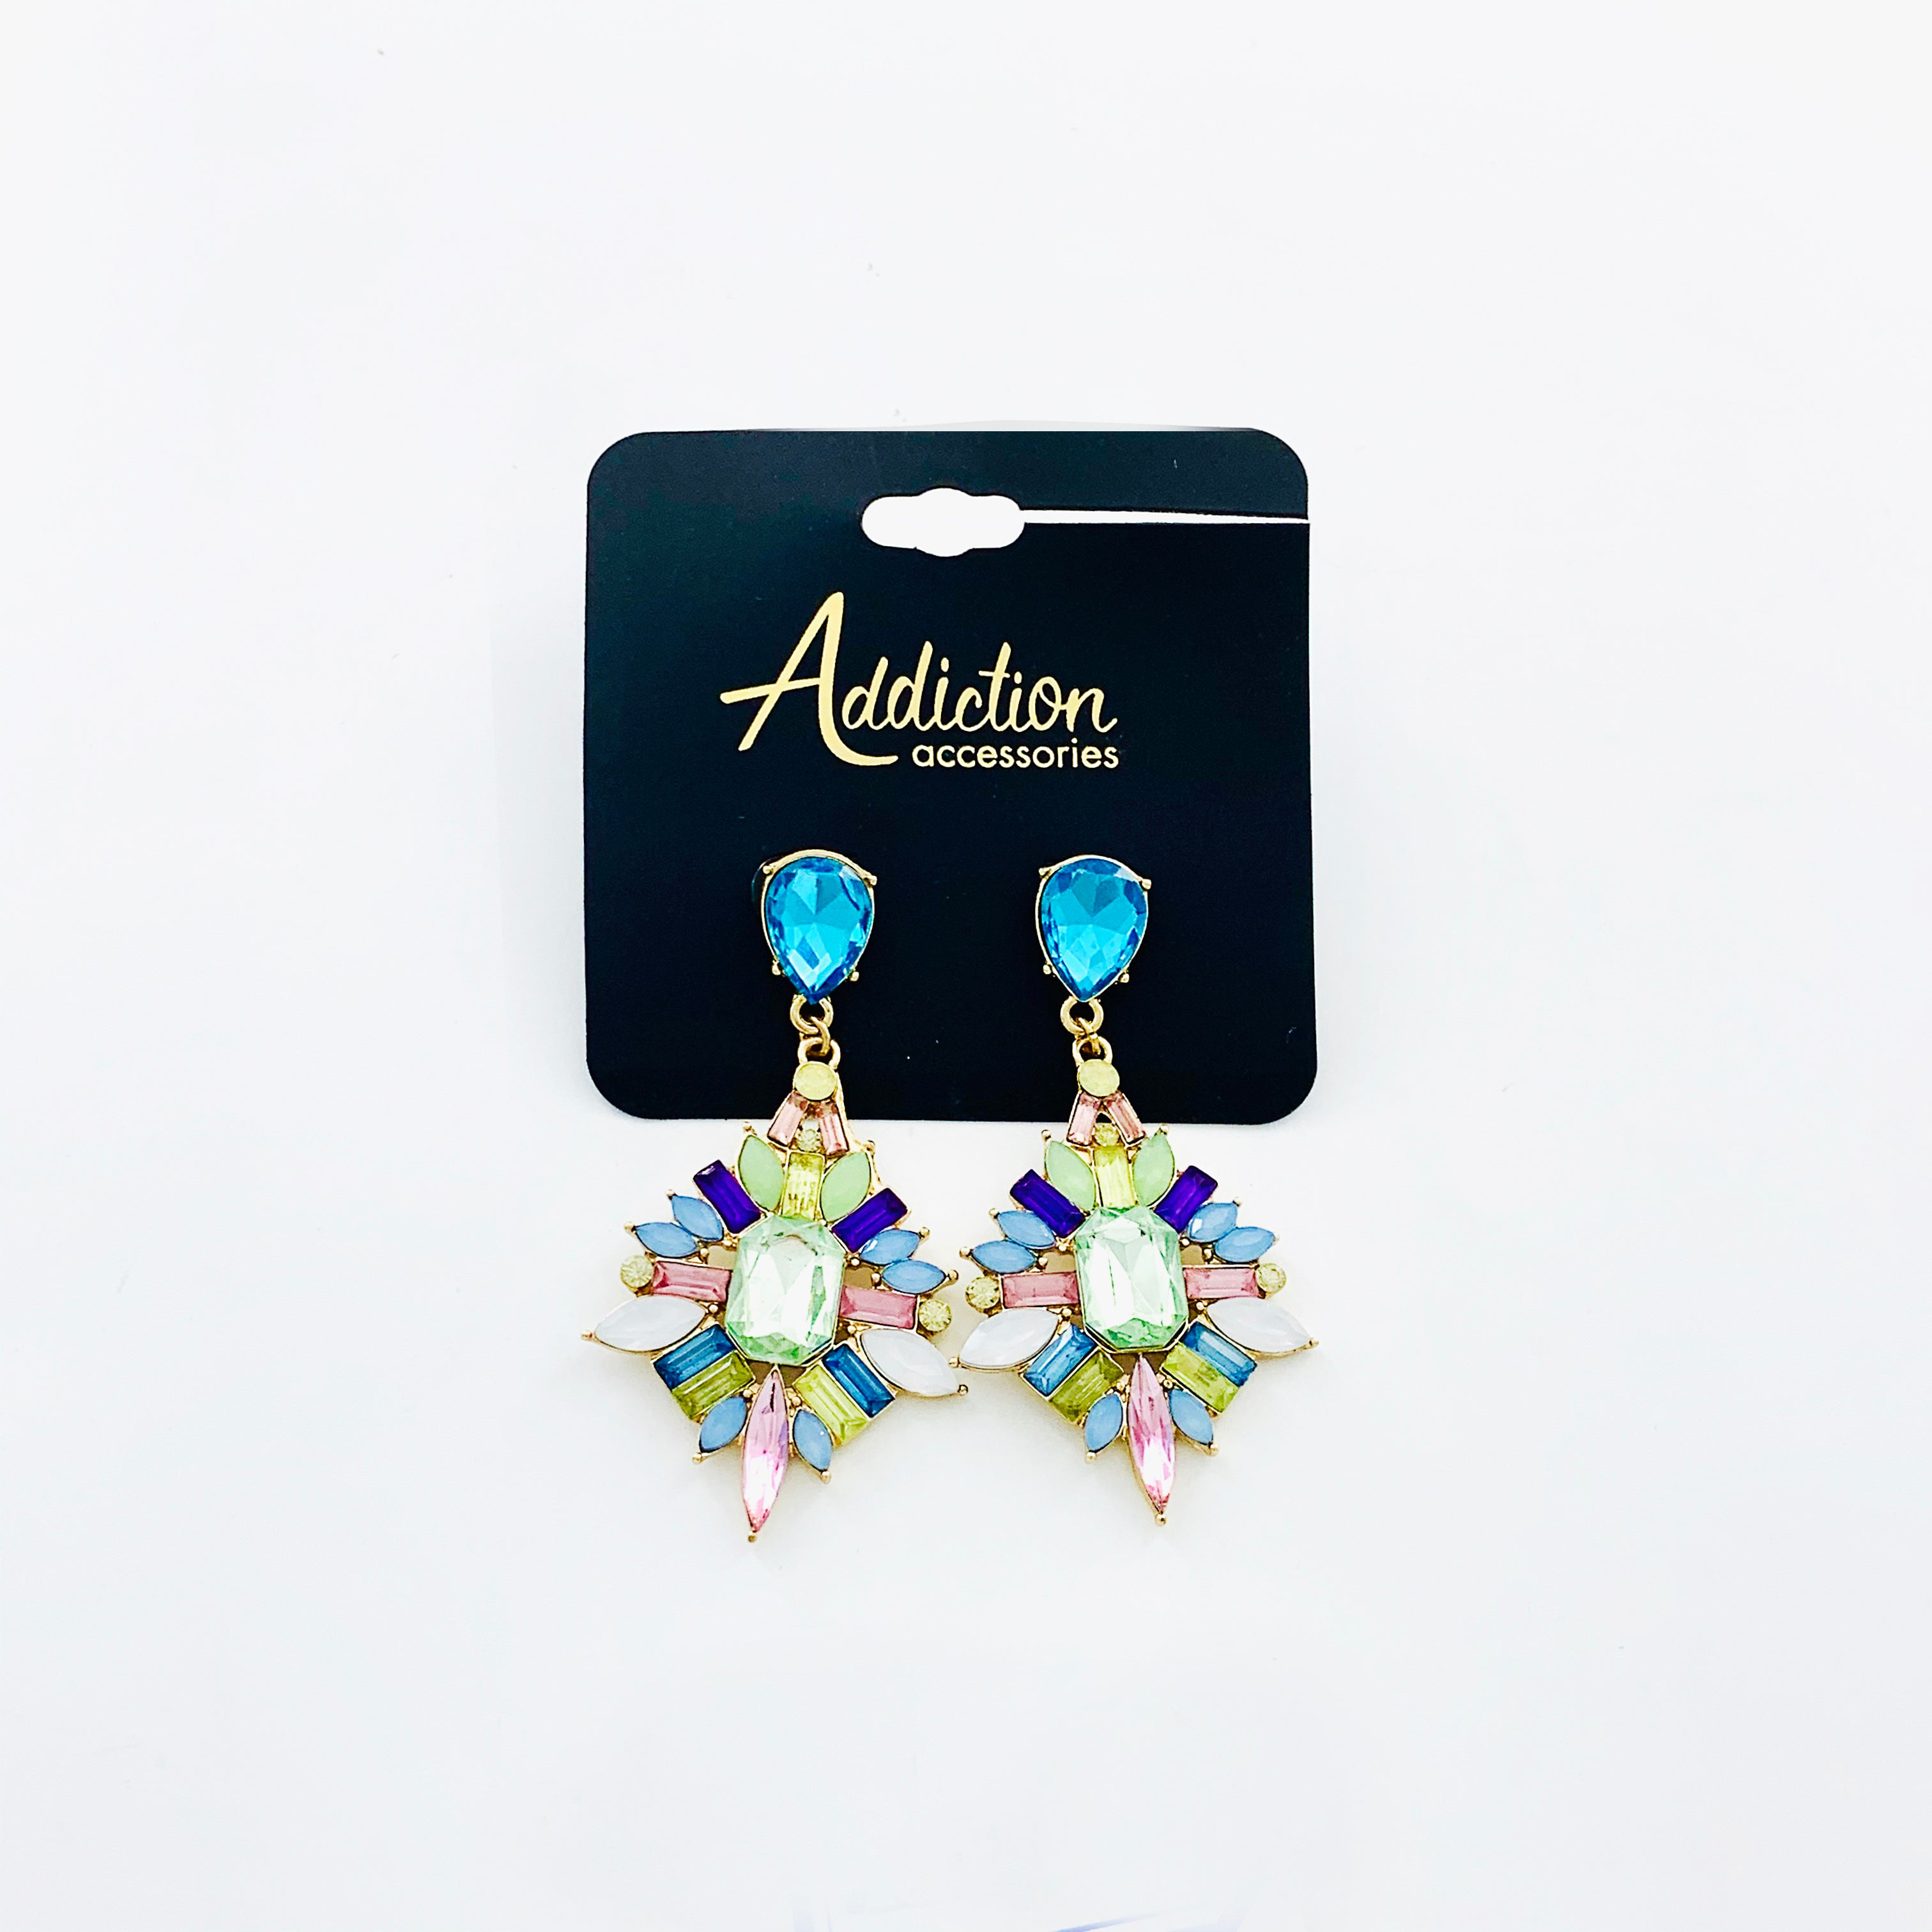 Art-deco inspired dangling earrings with multicolour stones